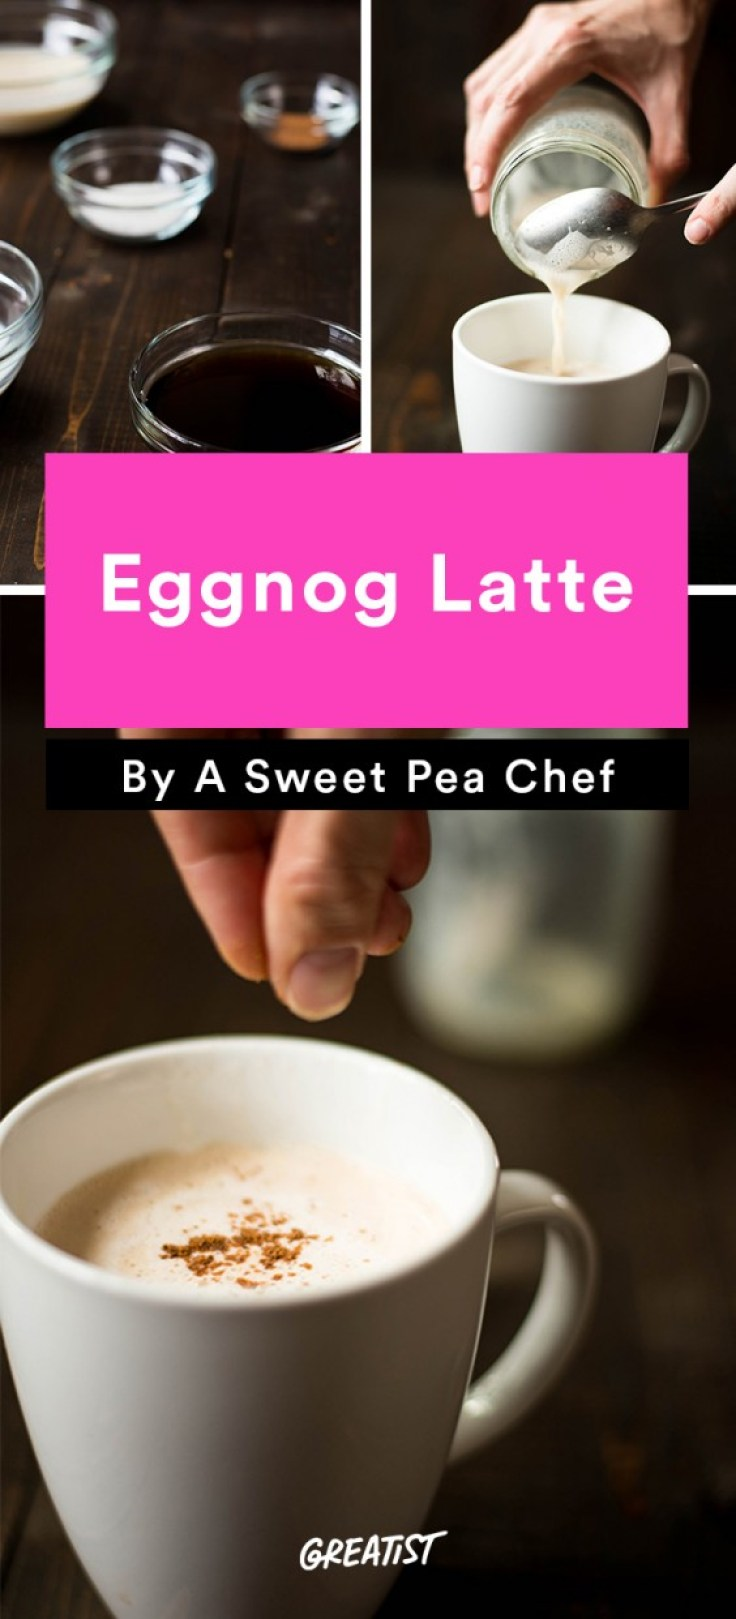 At Home Starbucks Recipes: Eggnog Latte